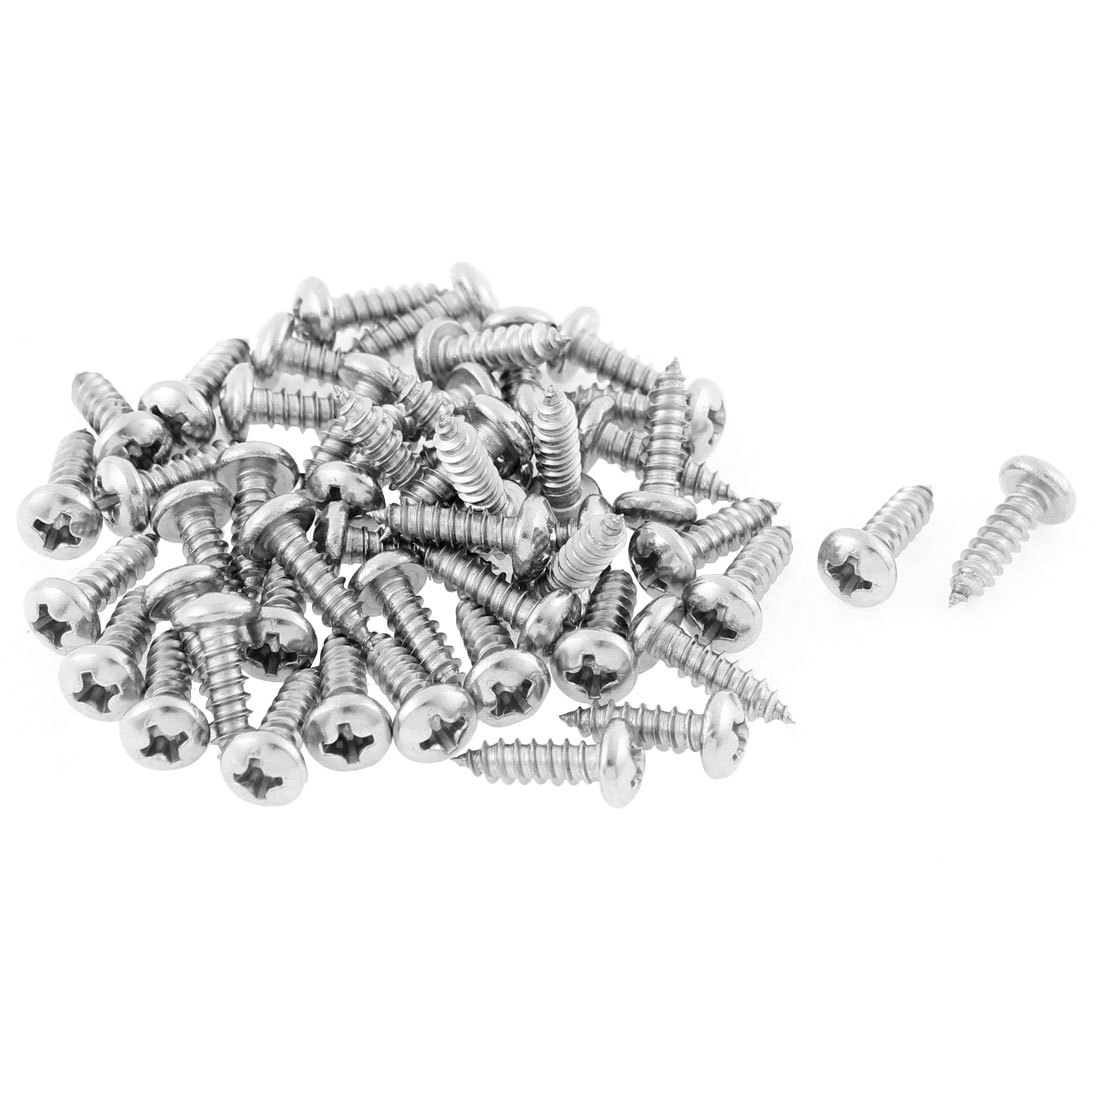 50 Pcs 3.9mmx13mm Stainless Steel Phillips Round Head Sheet Self Tapping Screws